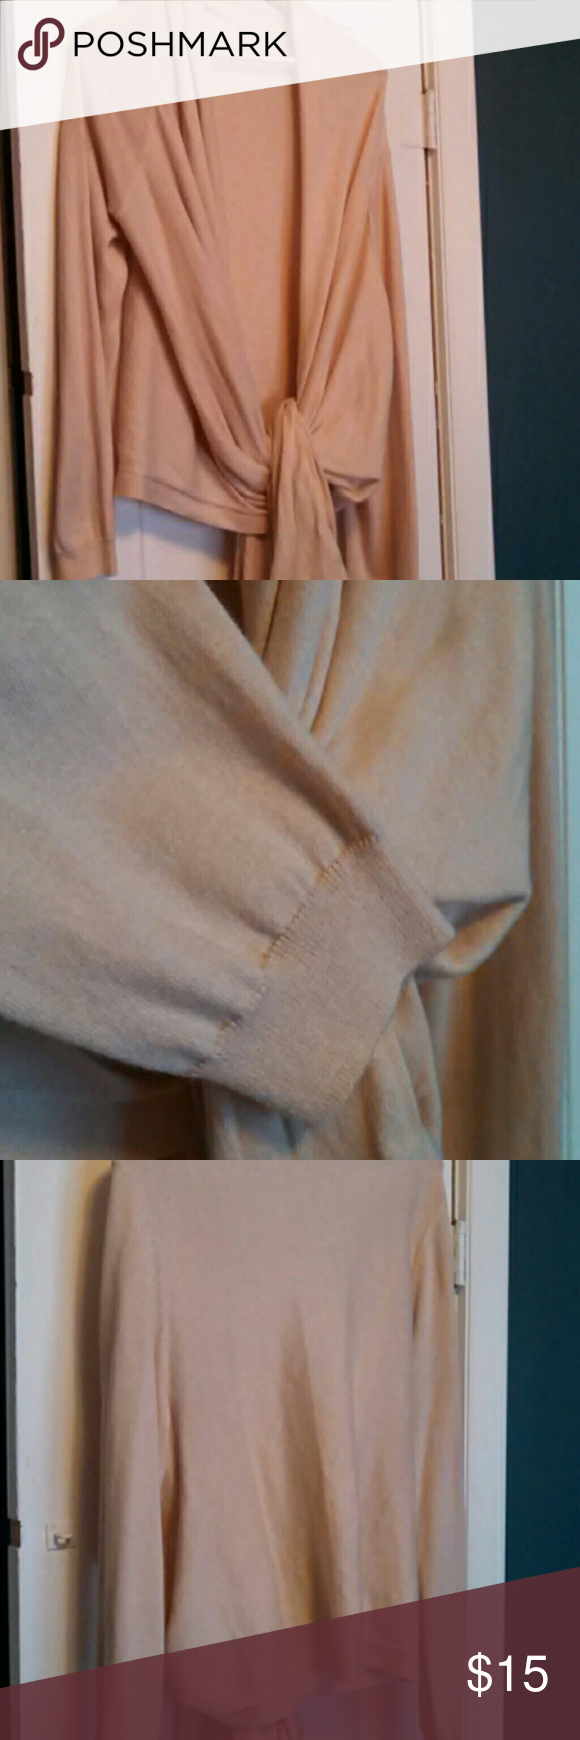 Beige wrap sweater 85% cotton 15% cashmere Super soft, never worn Moda International Sweaters